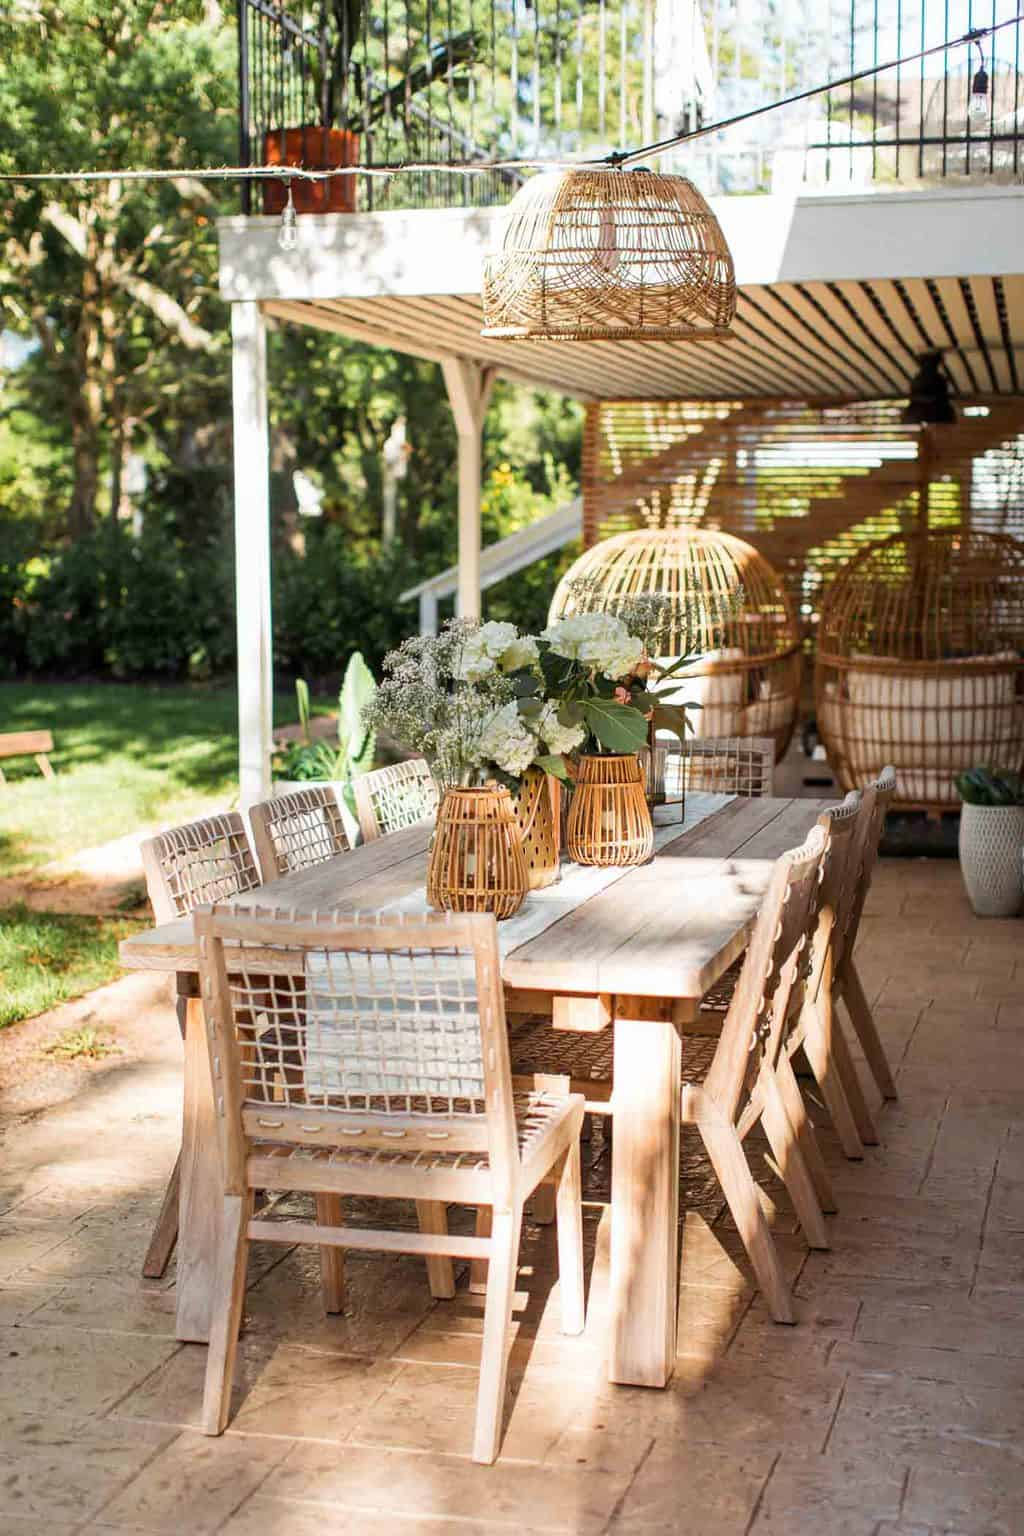 photo of an article teaka outdoor dining table and chairs